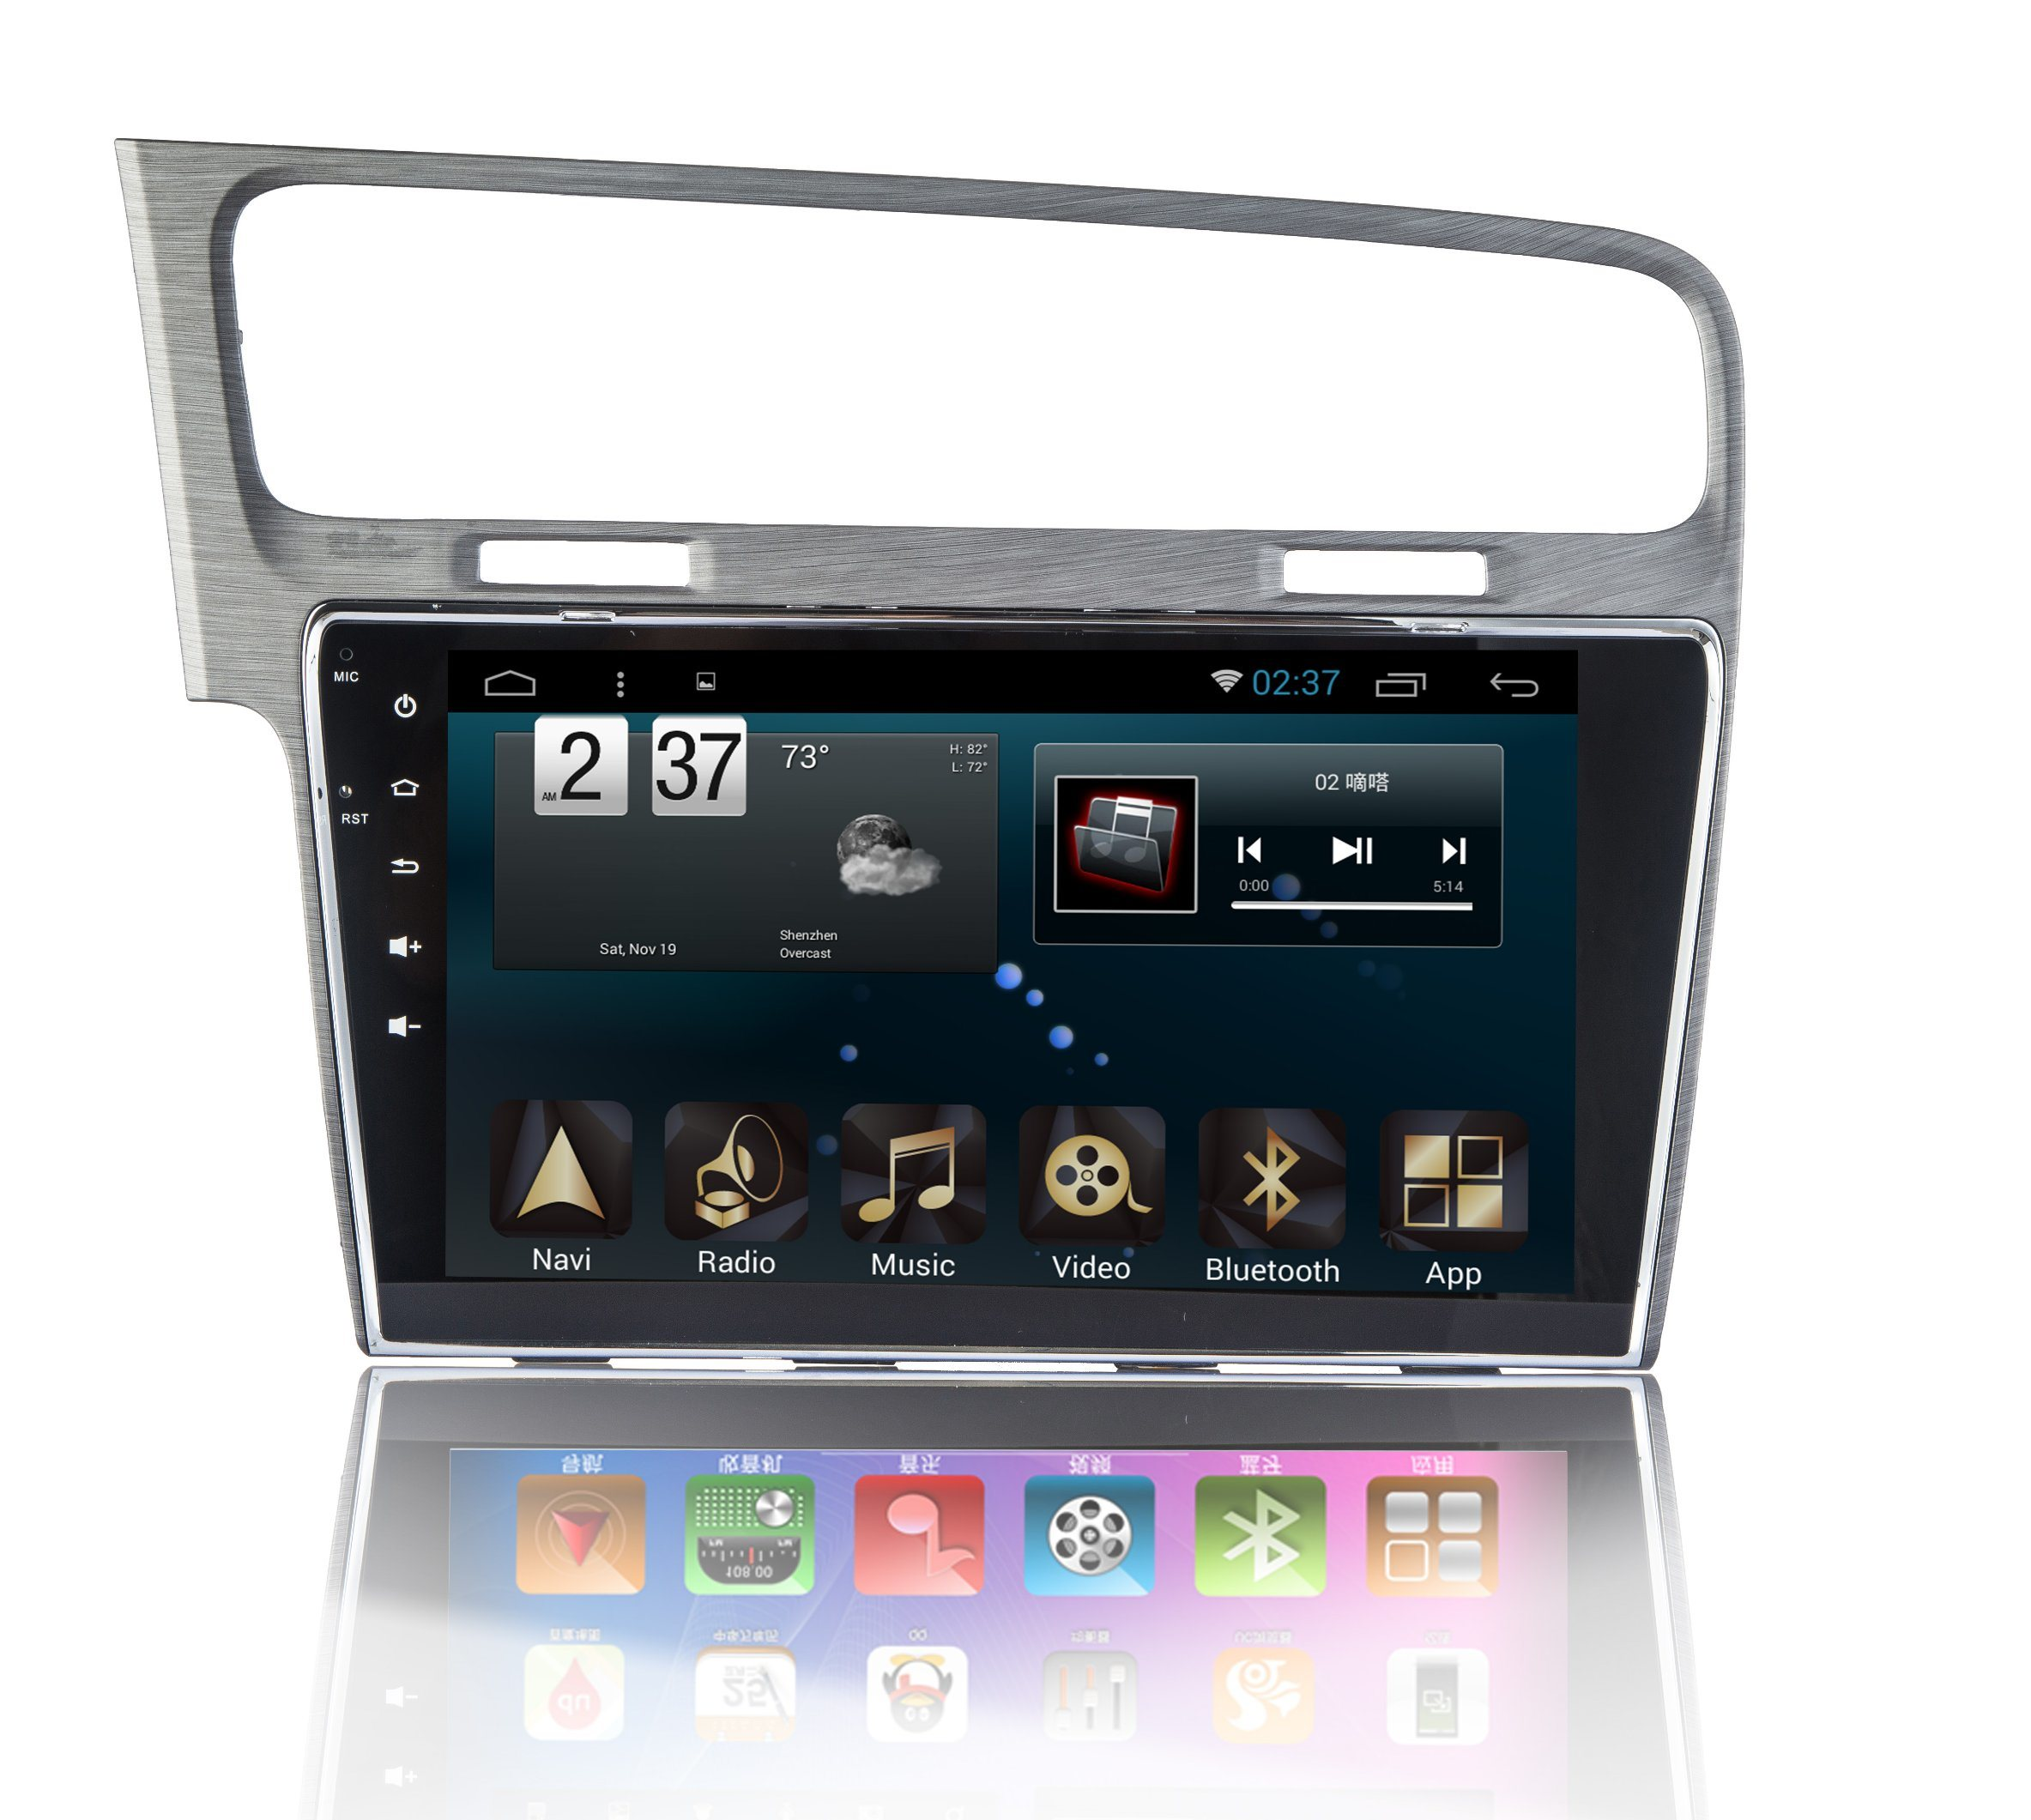 New Ui Android 6.0 System Car DVD Player for Volkswagen Golf with Car GPS Navigation